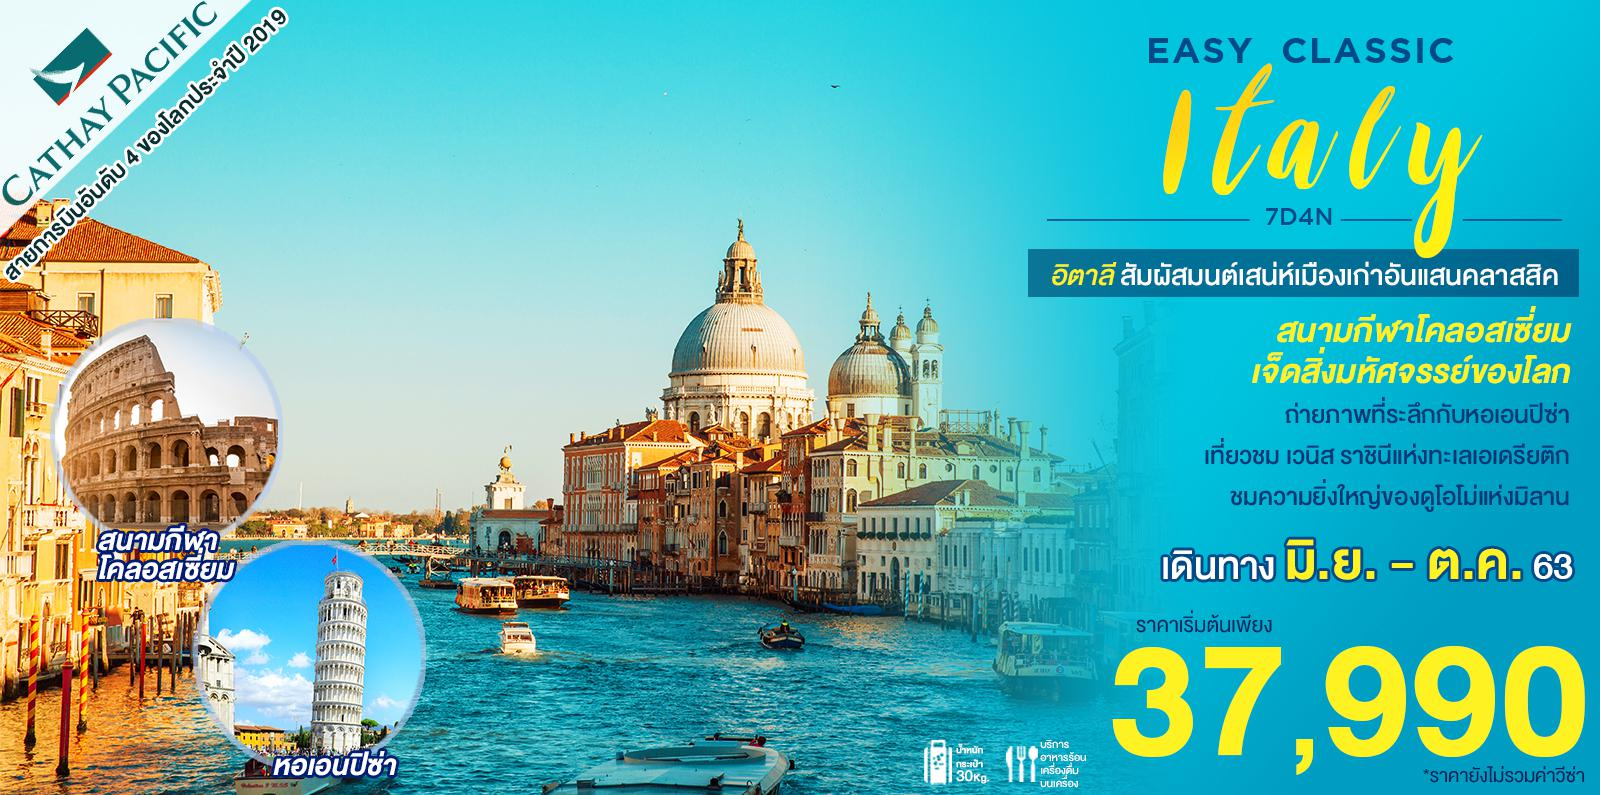 EASY CLASSIC ITALY 7D4N